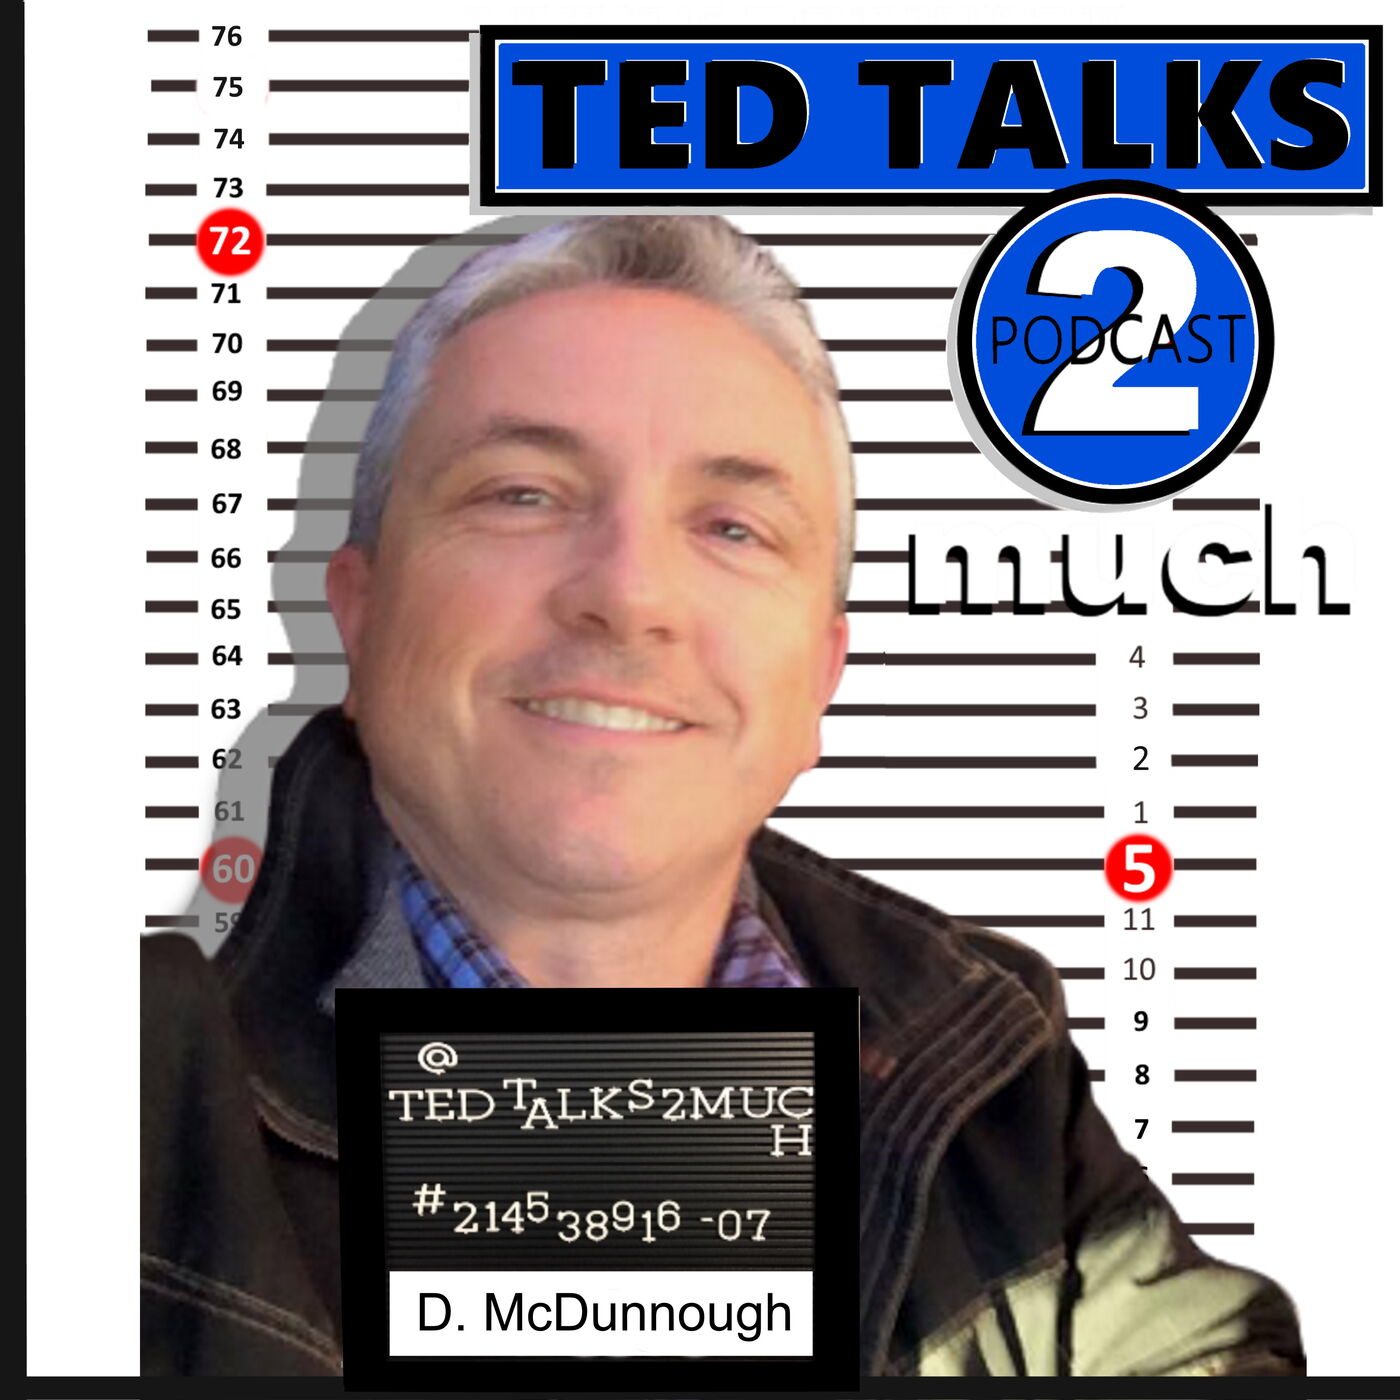 TED TALKS 2 Darren McDunnough...about Bands and Comedy, First and Second Wives.